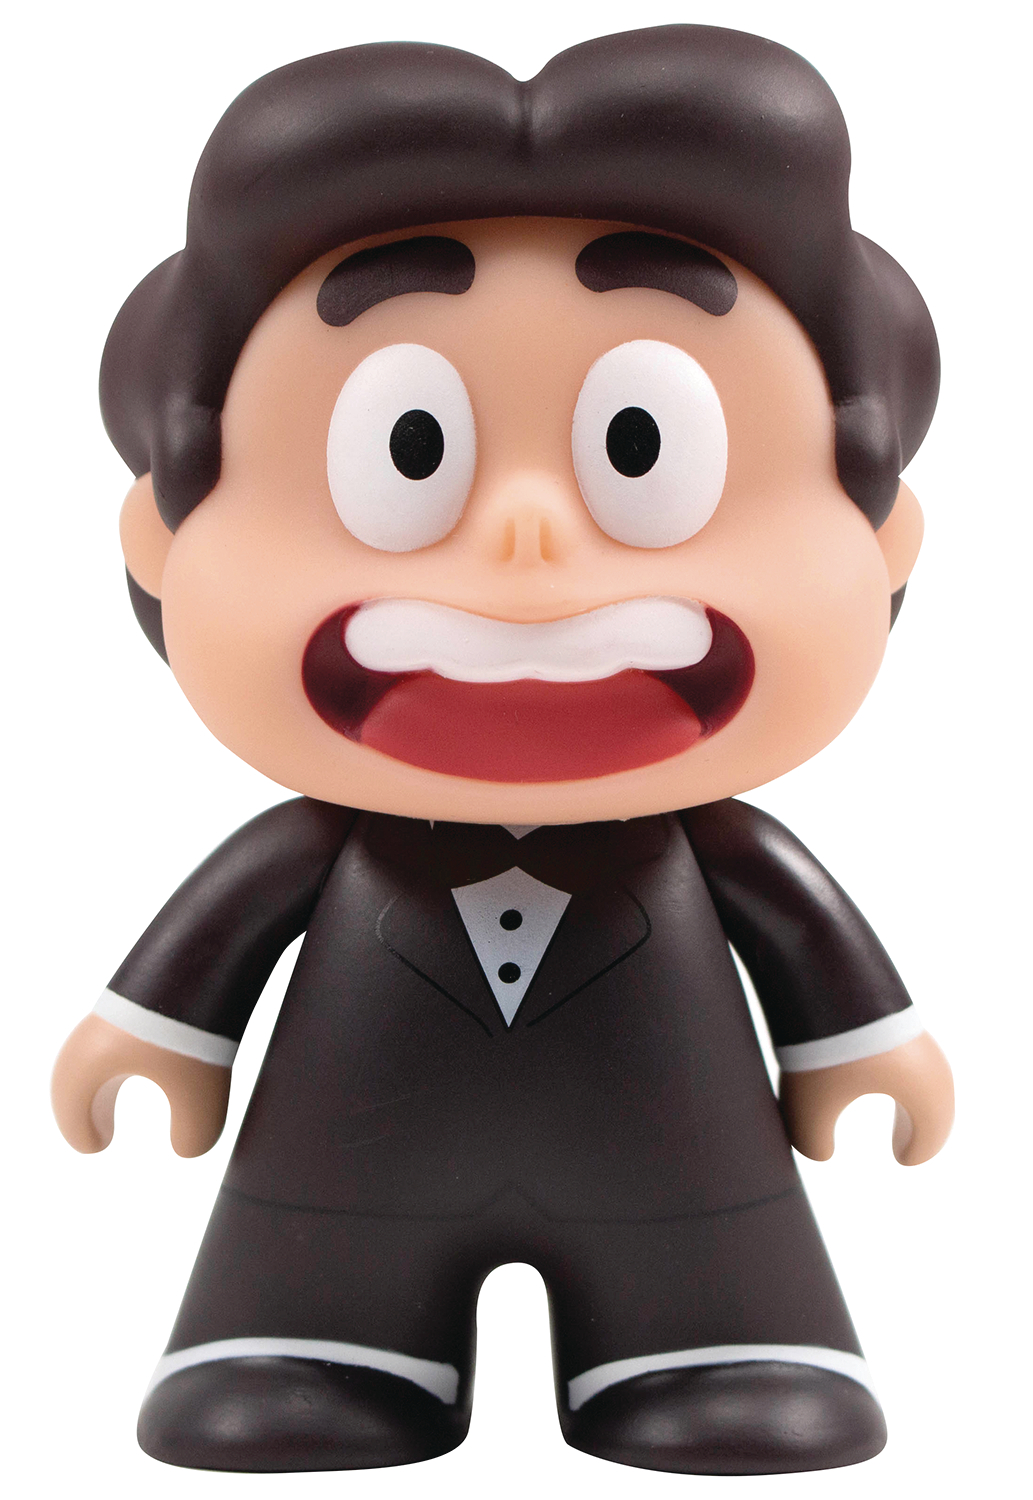 CARTOON NETWORK TITANS STEVEN UNIVERSE TUX 4.5 IN VIN FIG